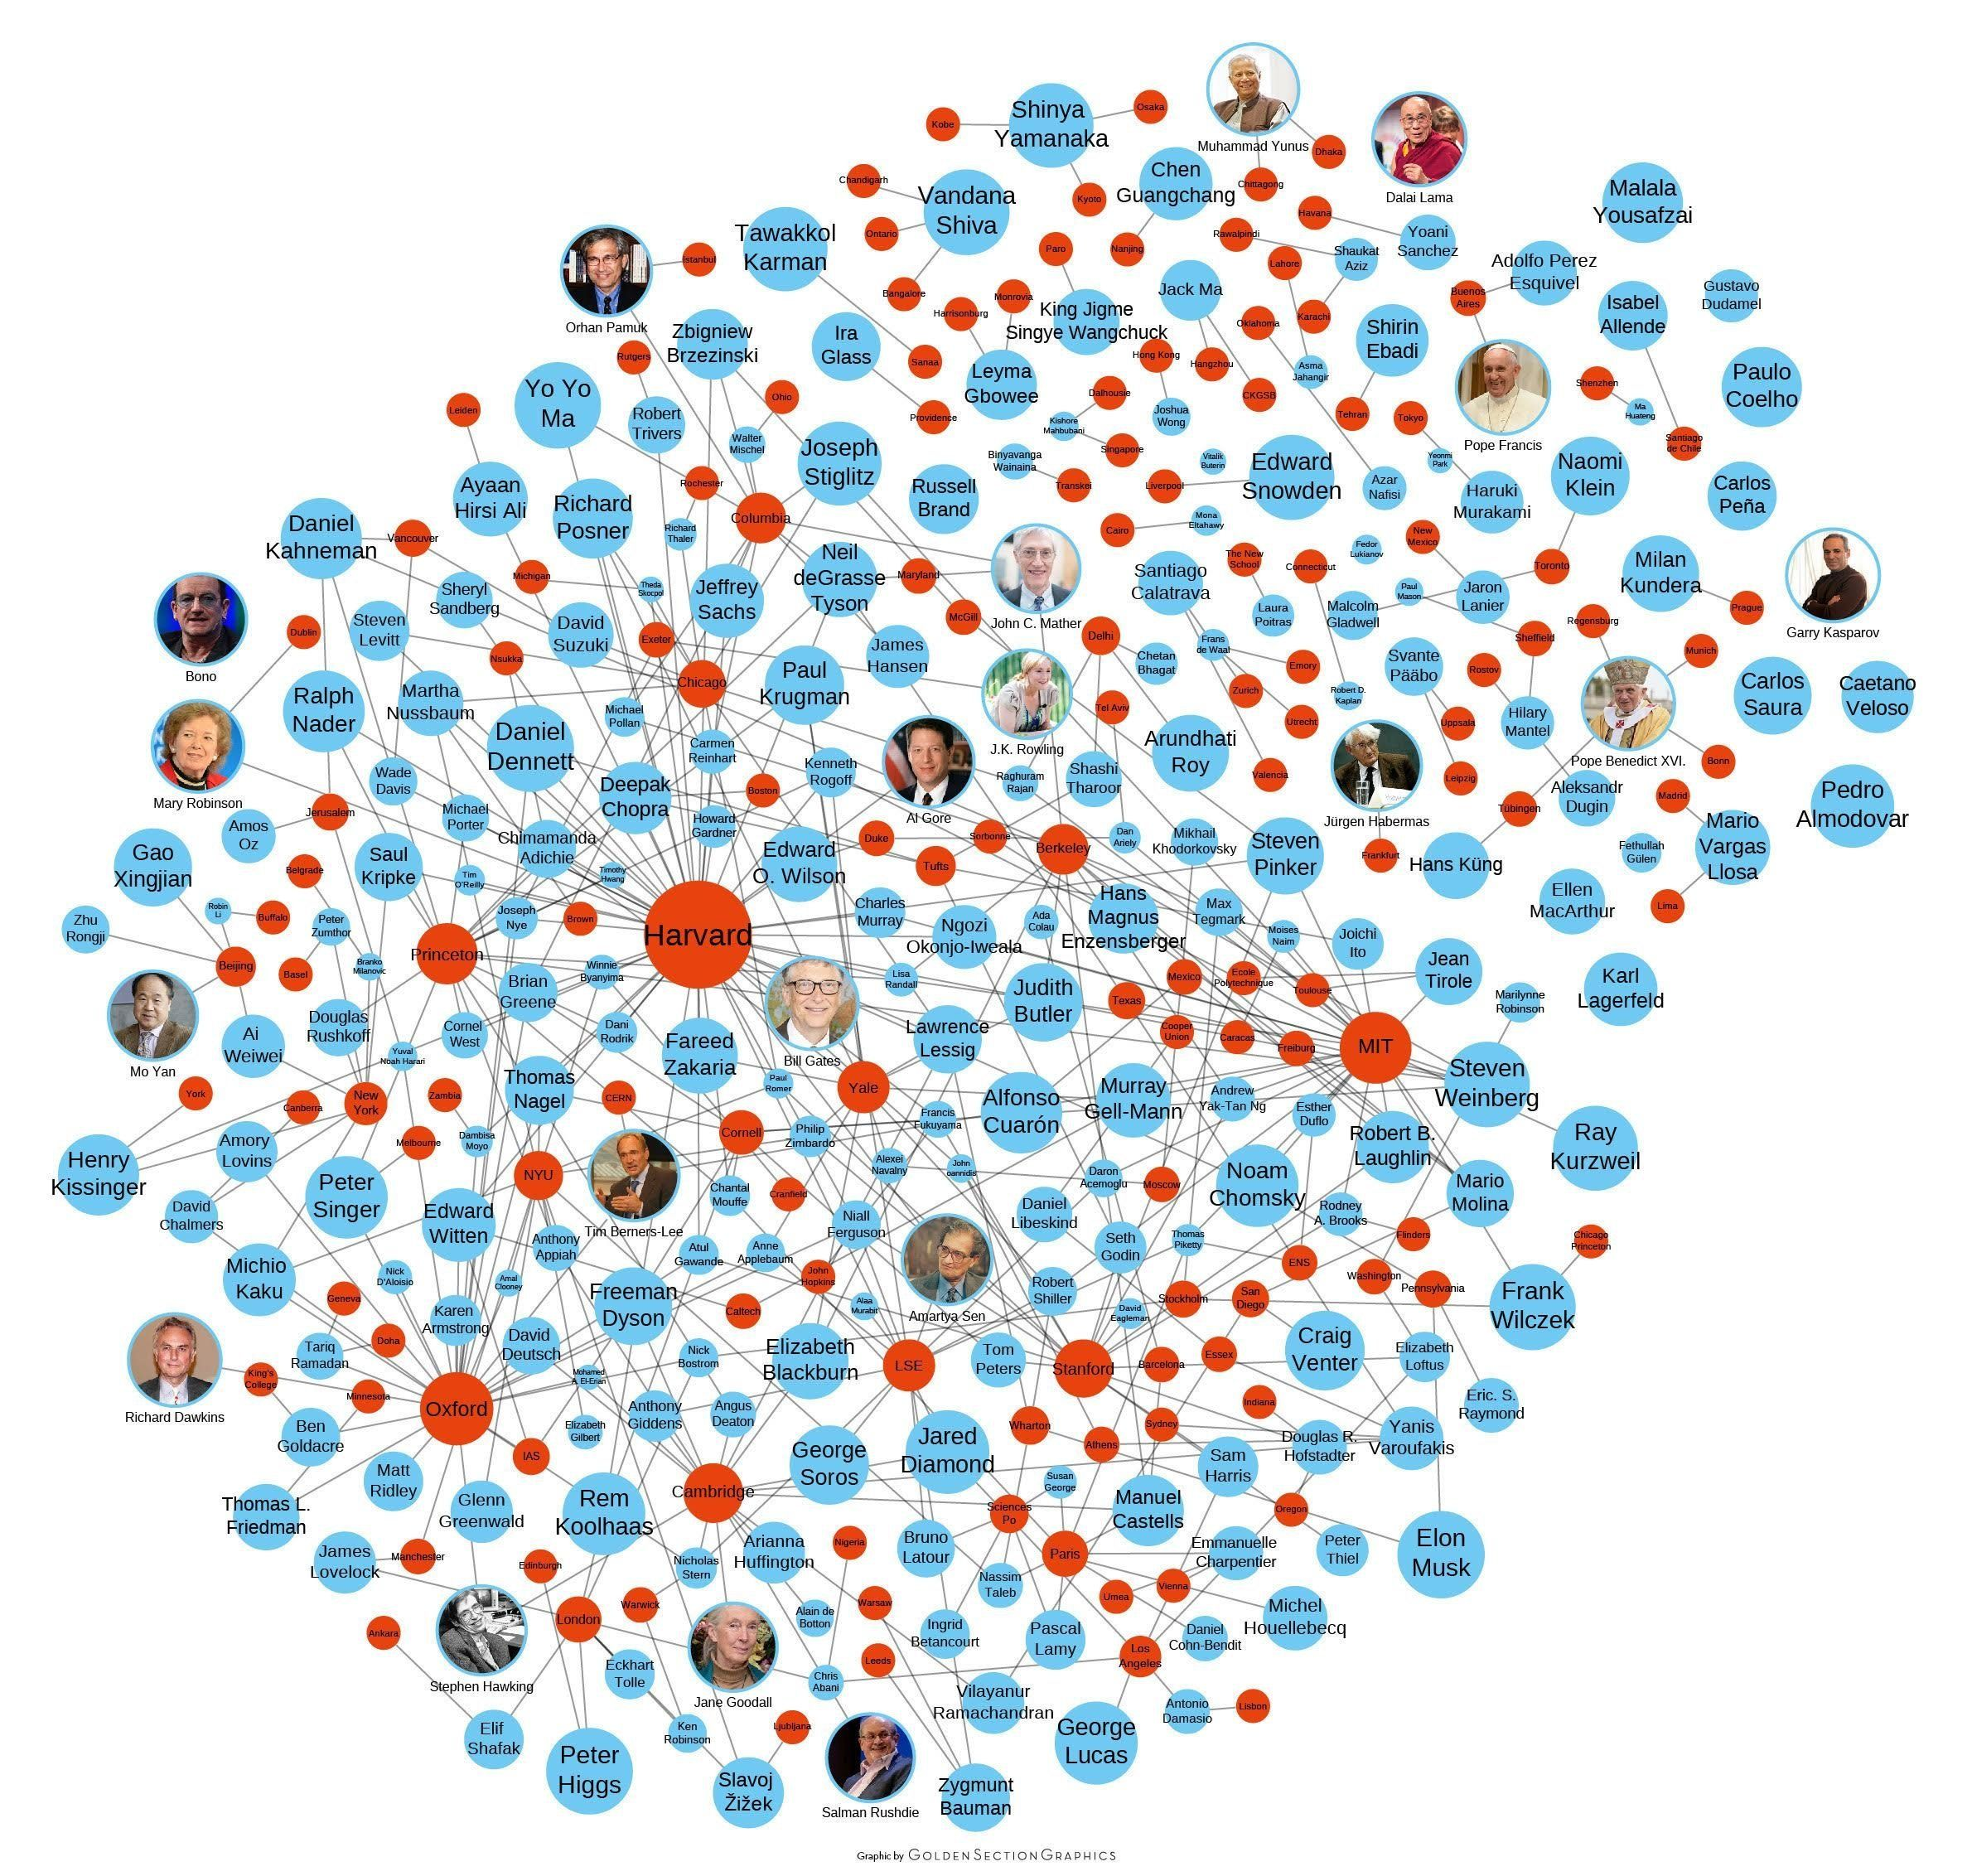 These Charts Show The People And Platforms Most Influential Online In